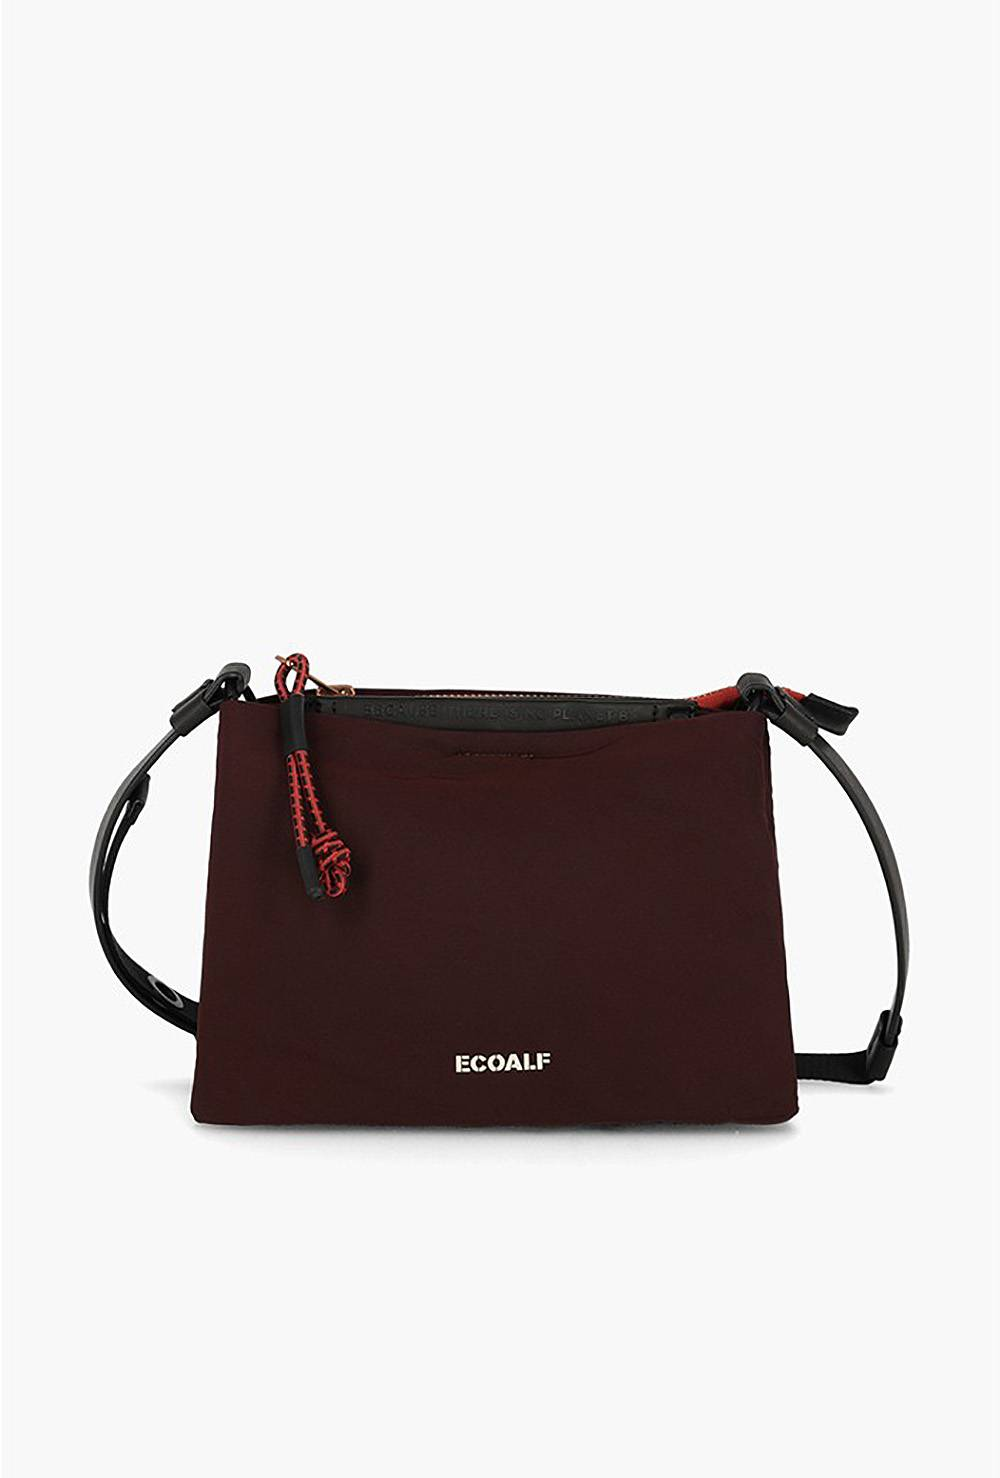 ecoalf cheap recycled handbags